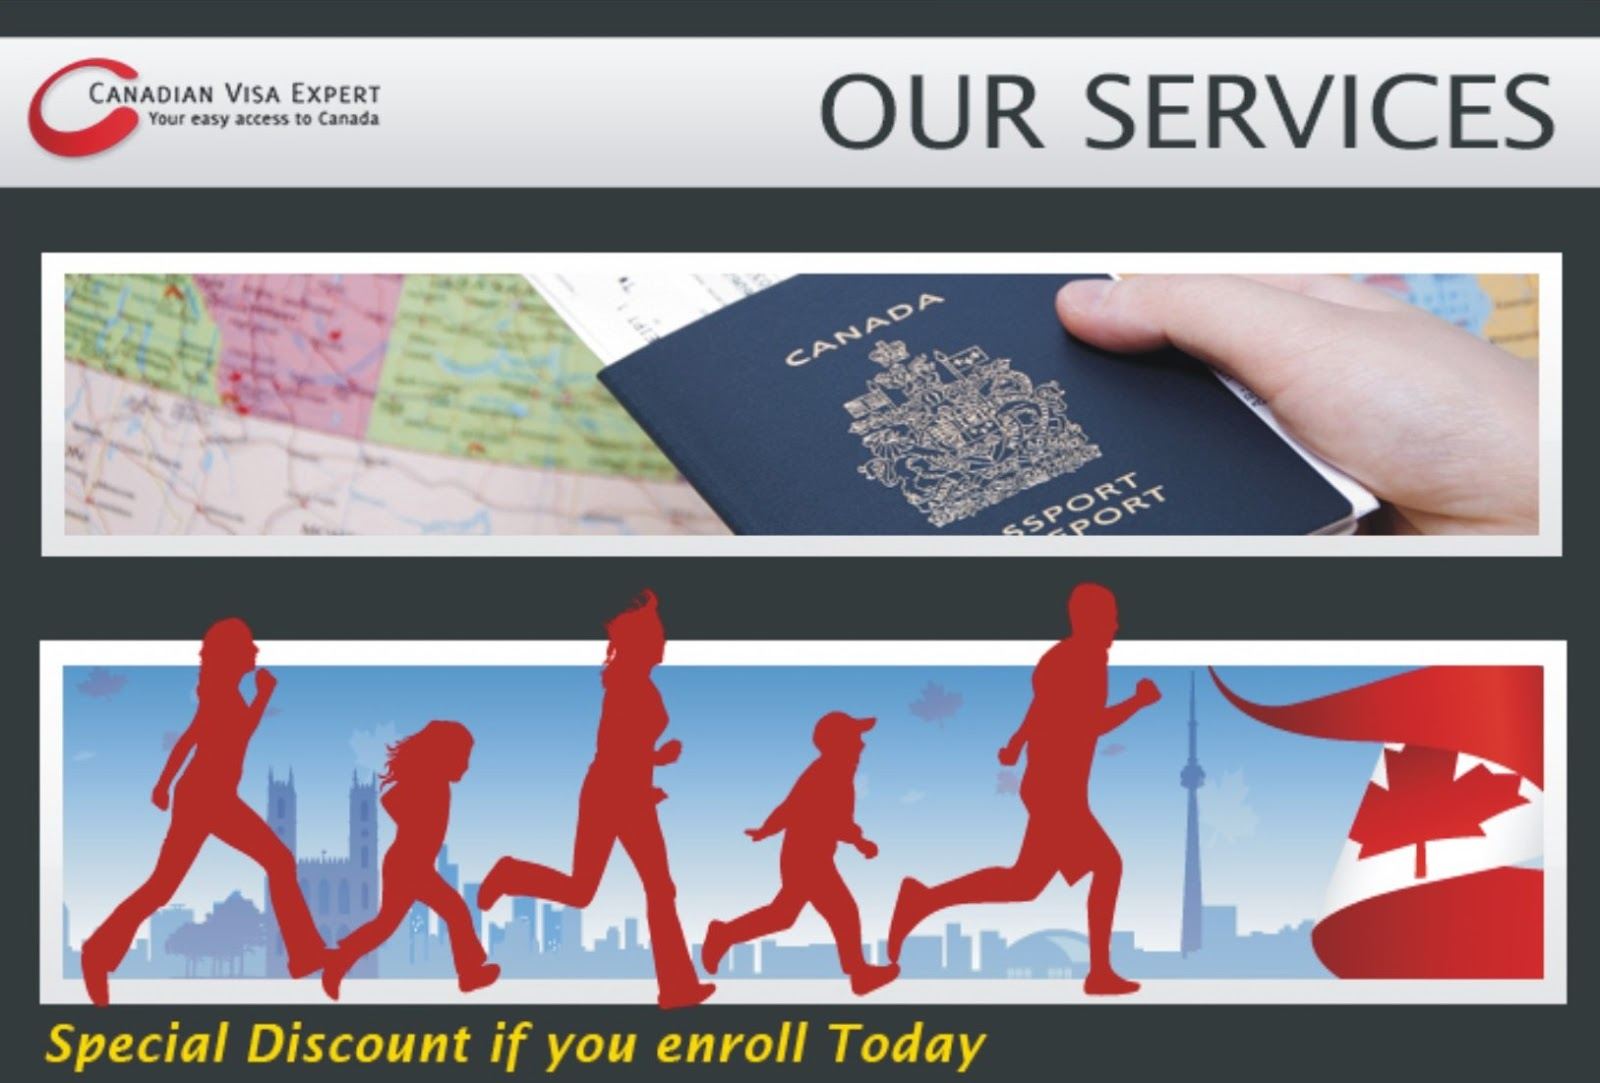 canada visa brochure It's time to tell your small business story these easy-to-make, full-color custom brochures from vistaprint are a great option if you're looking to tell your customers a complete story about your business perfect as handouts, takeaways or mailing inserts various paper stock options available.